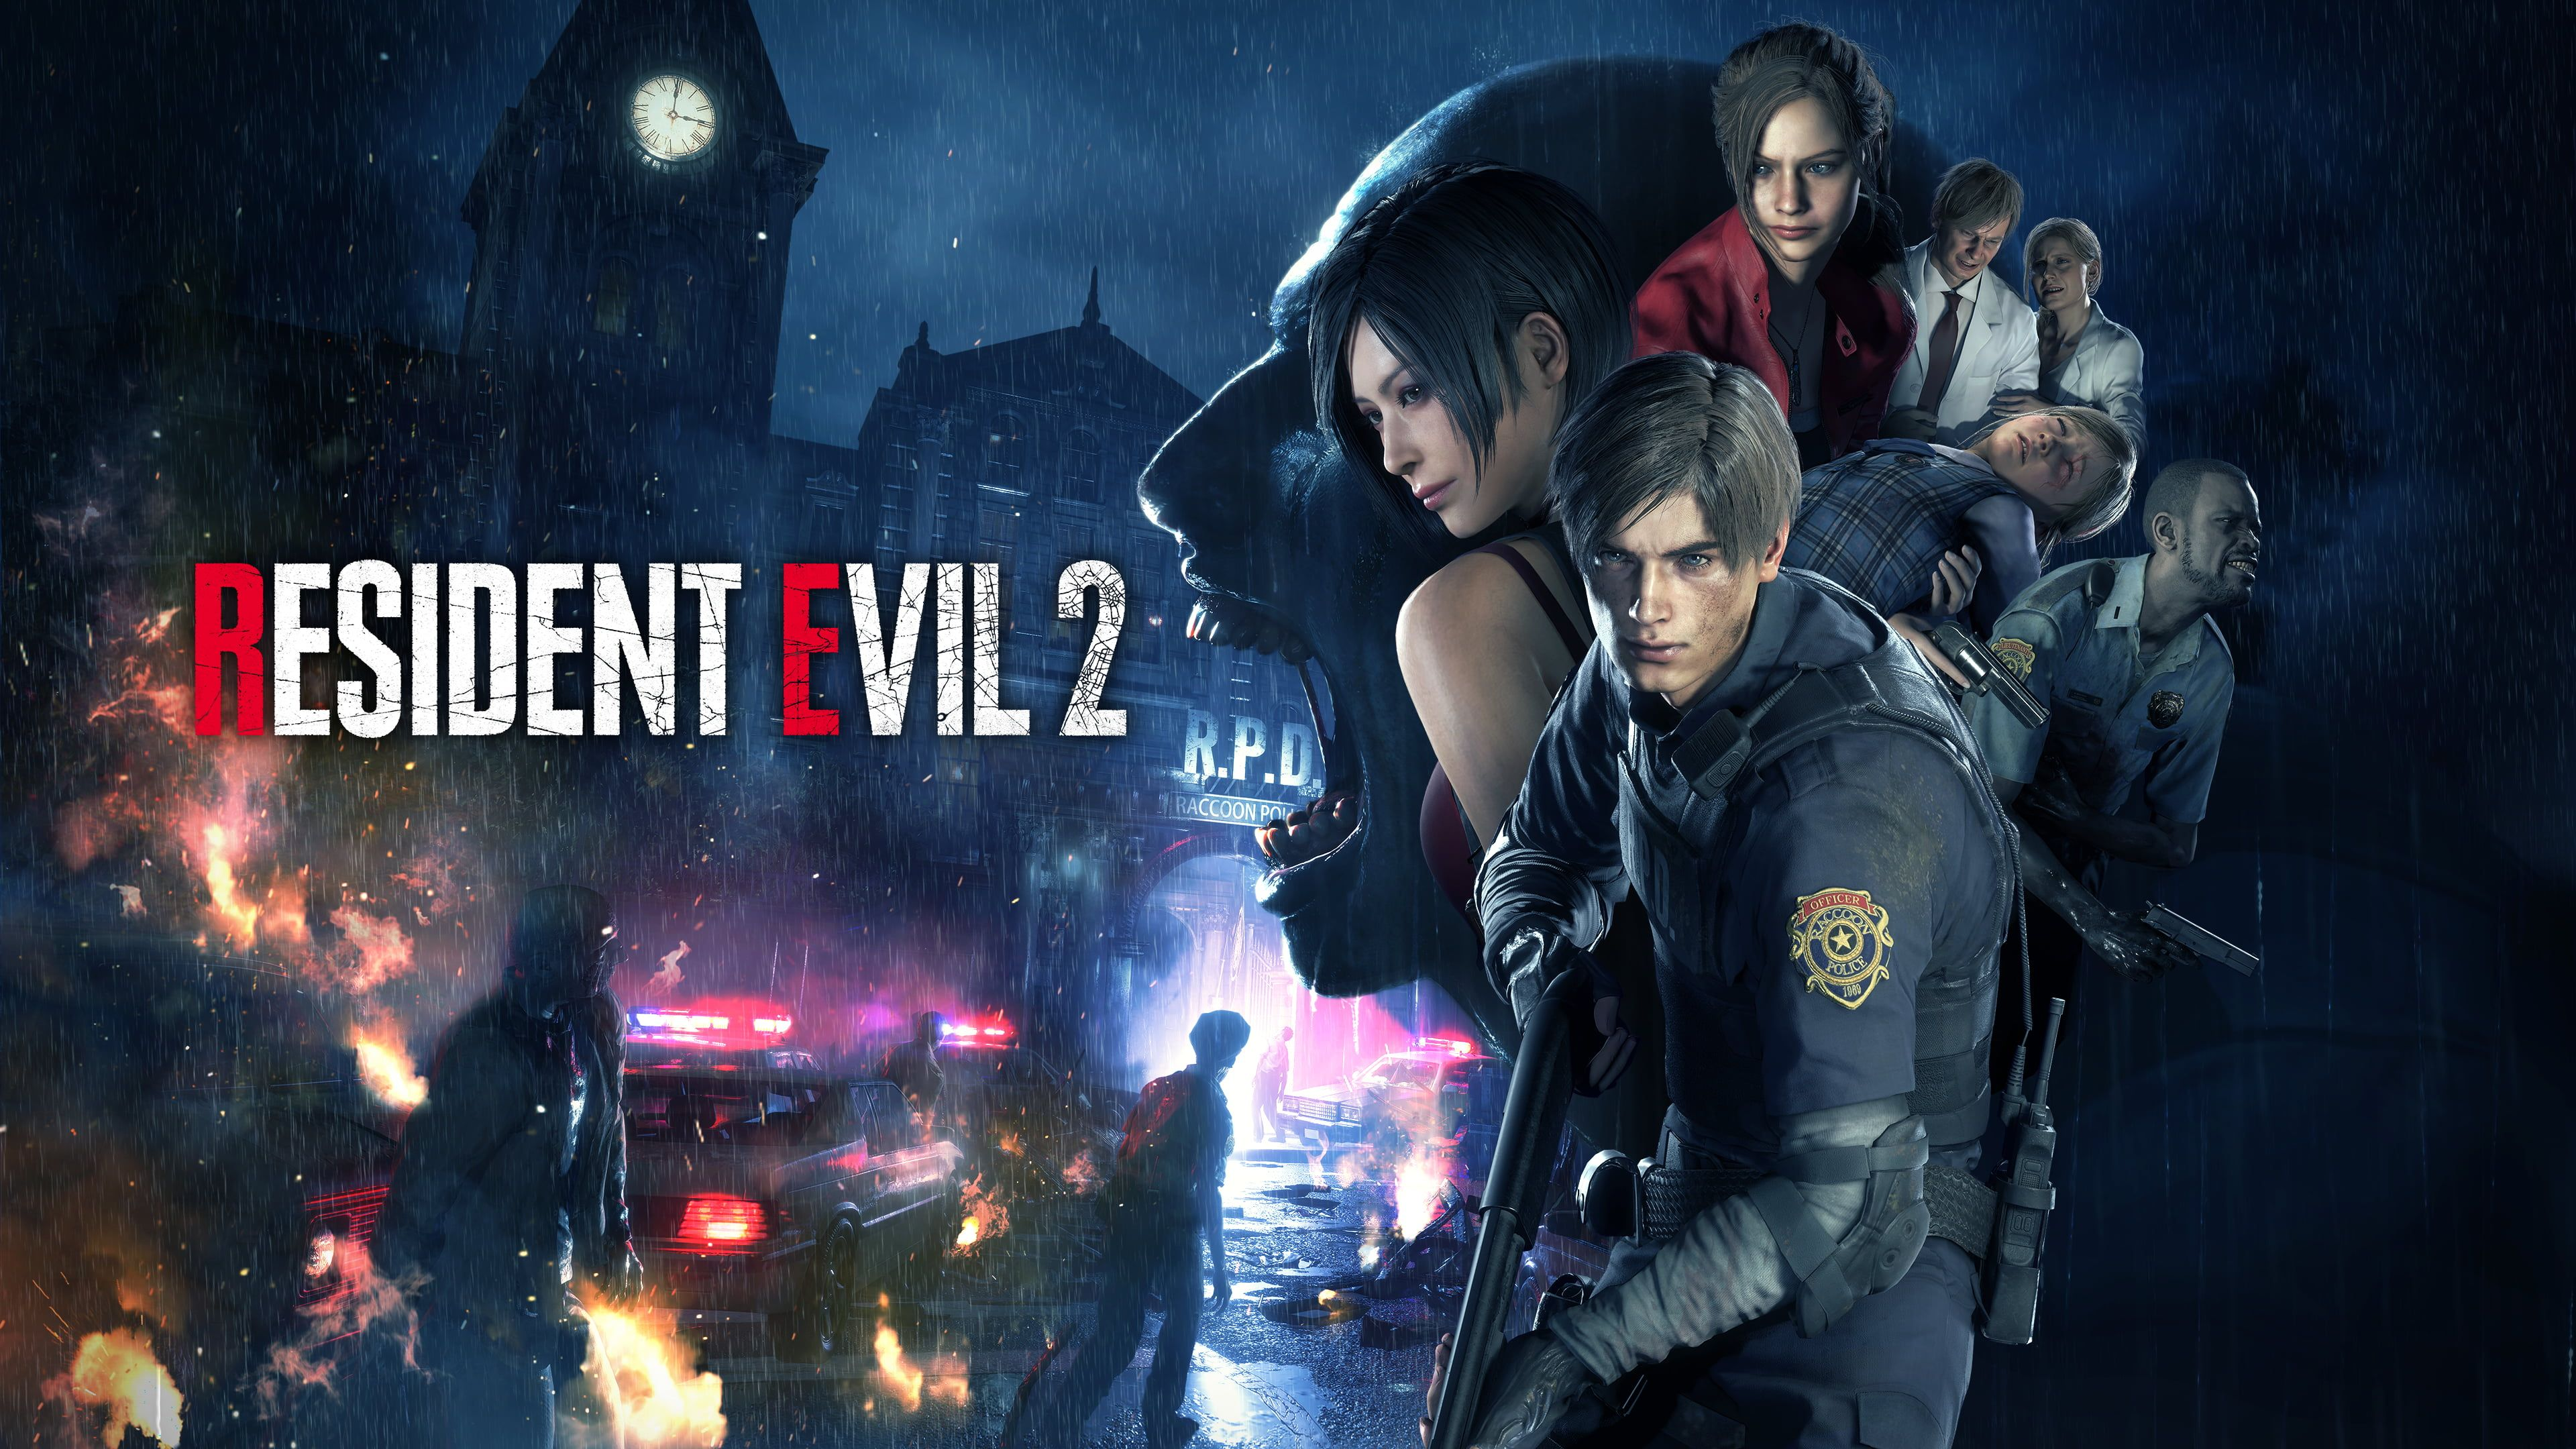 Resident Evil 2 Remake Horror Capcom Resident Evil 4k Wallpaper Hdwallpaper Desktop In 2020 Resident Evil Evil Survival Horror Game